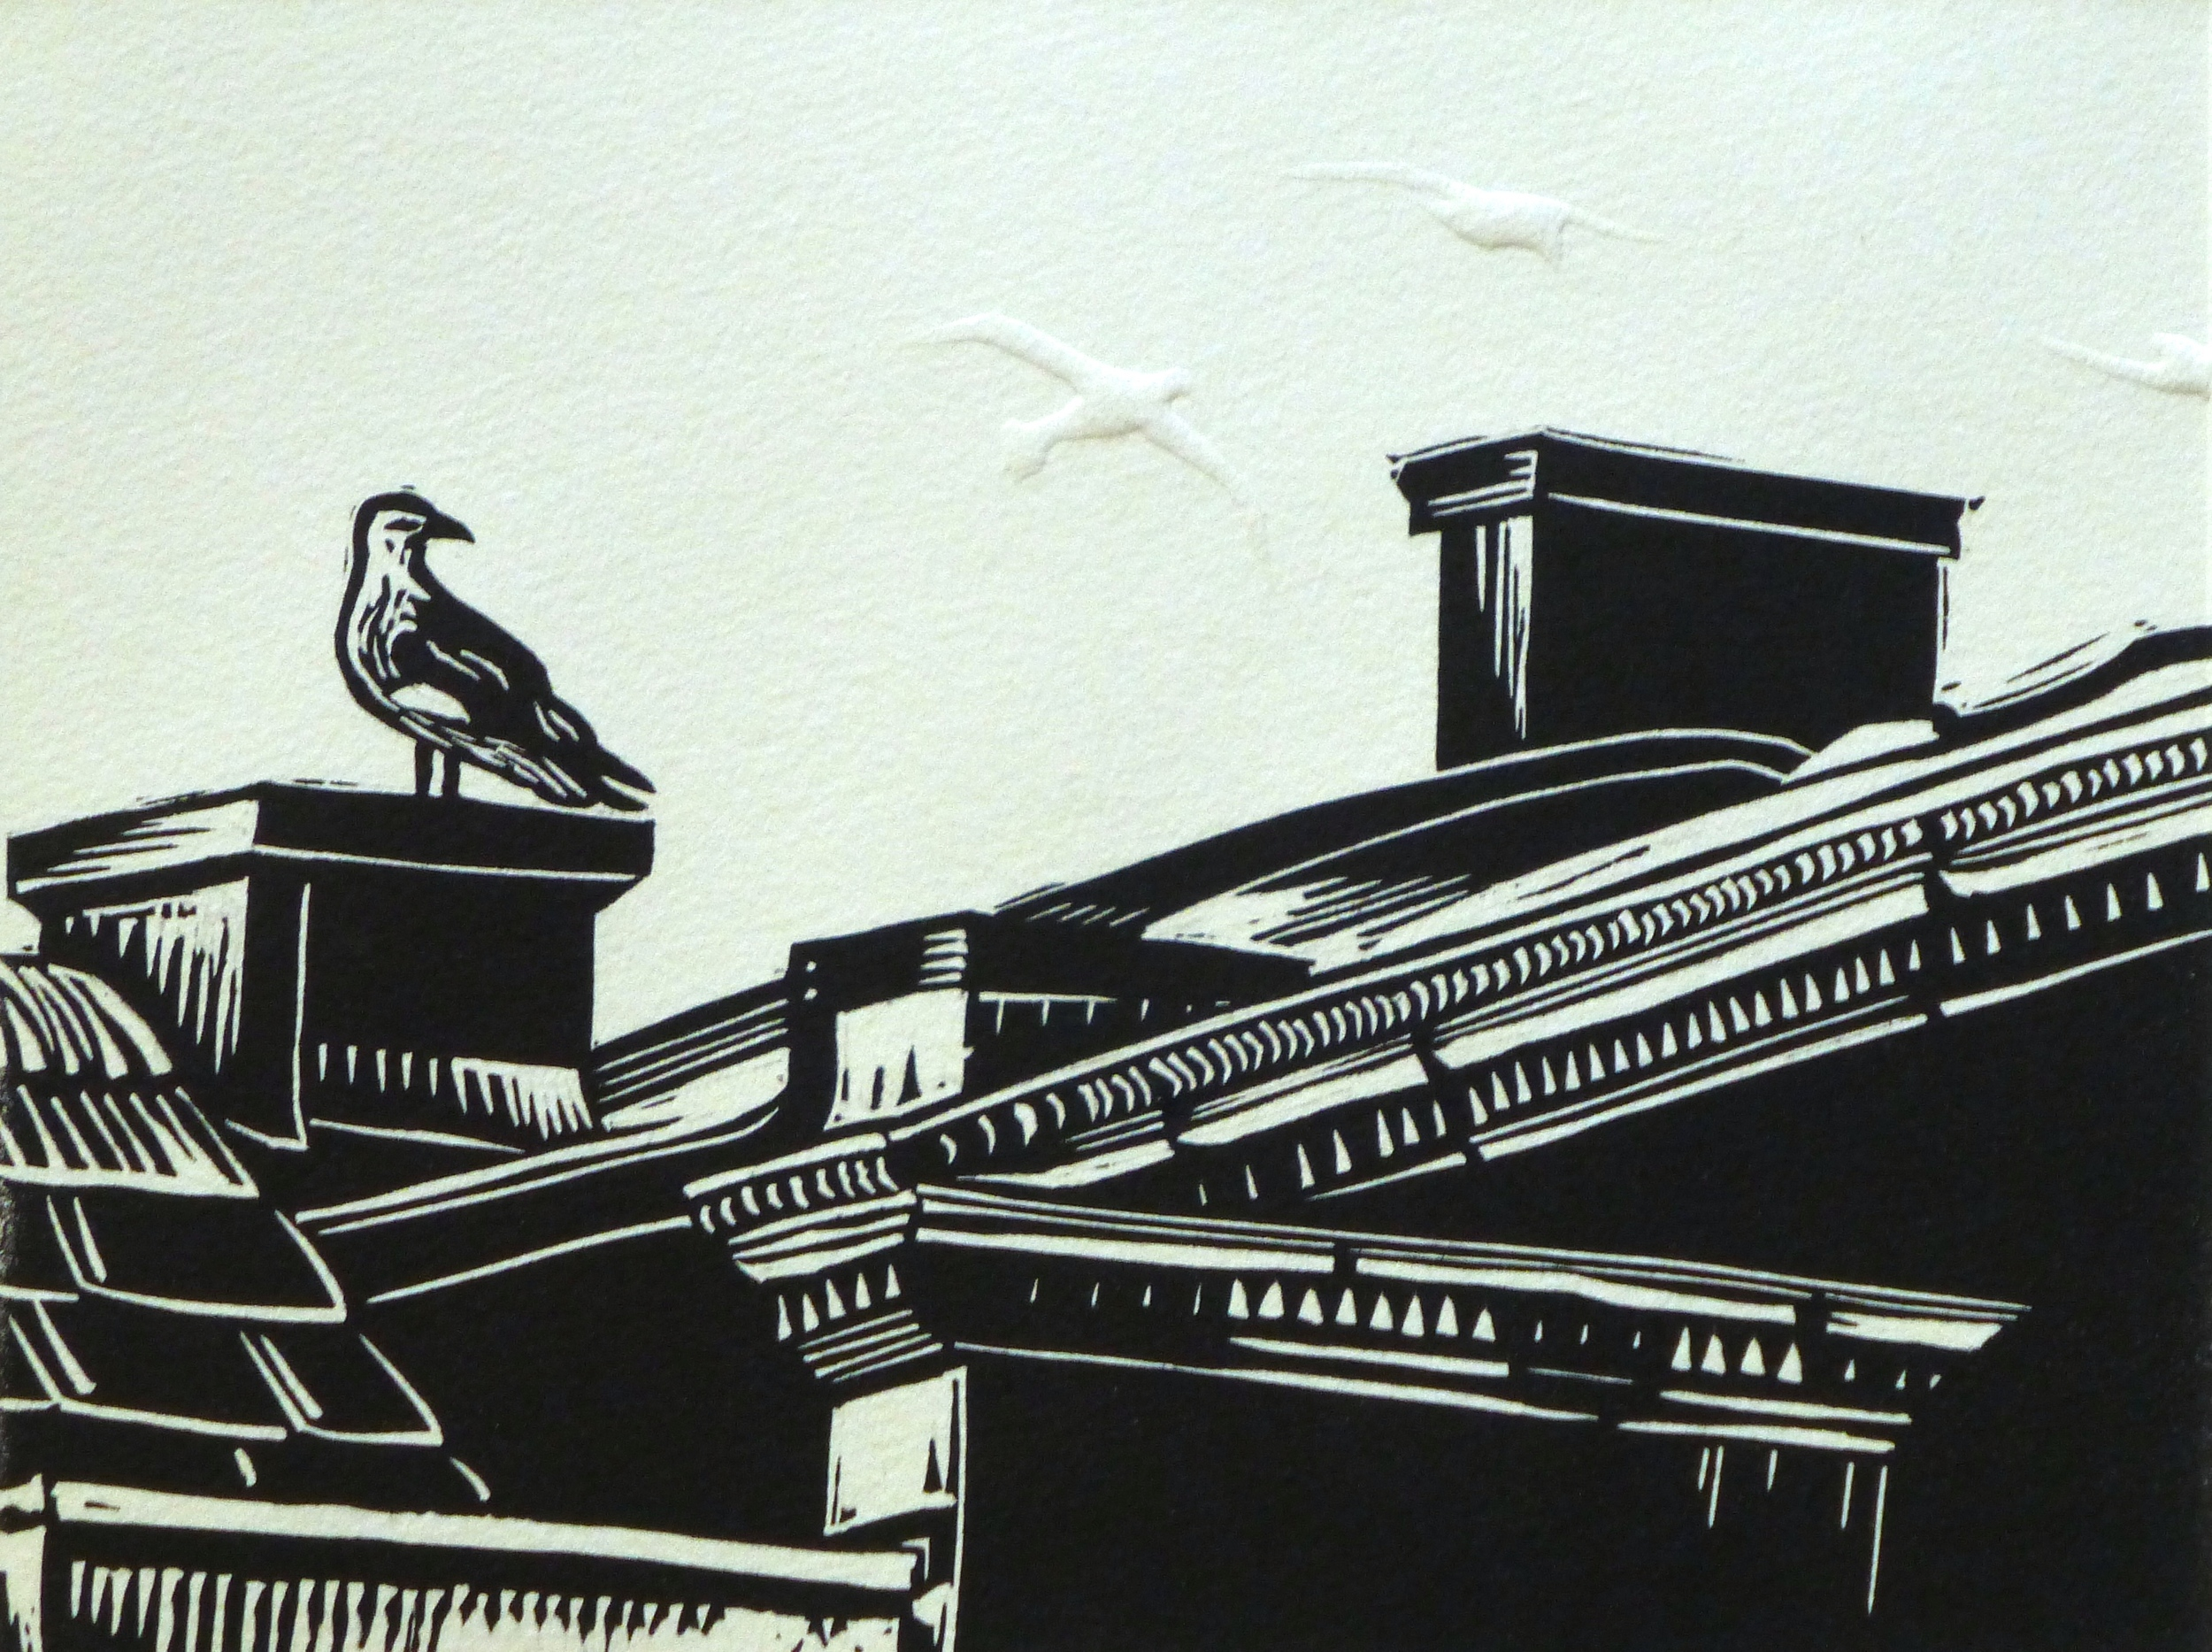 Bath Chimneys   Linocut with embossing, 2014  Edition of 8  Image size: 15 cm x 20 cm  Paper size: 30 cm x 34 cm  $100